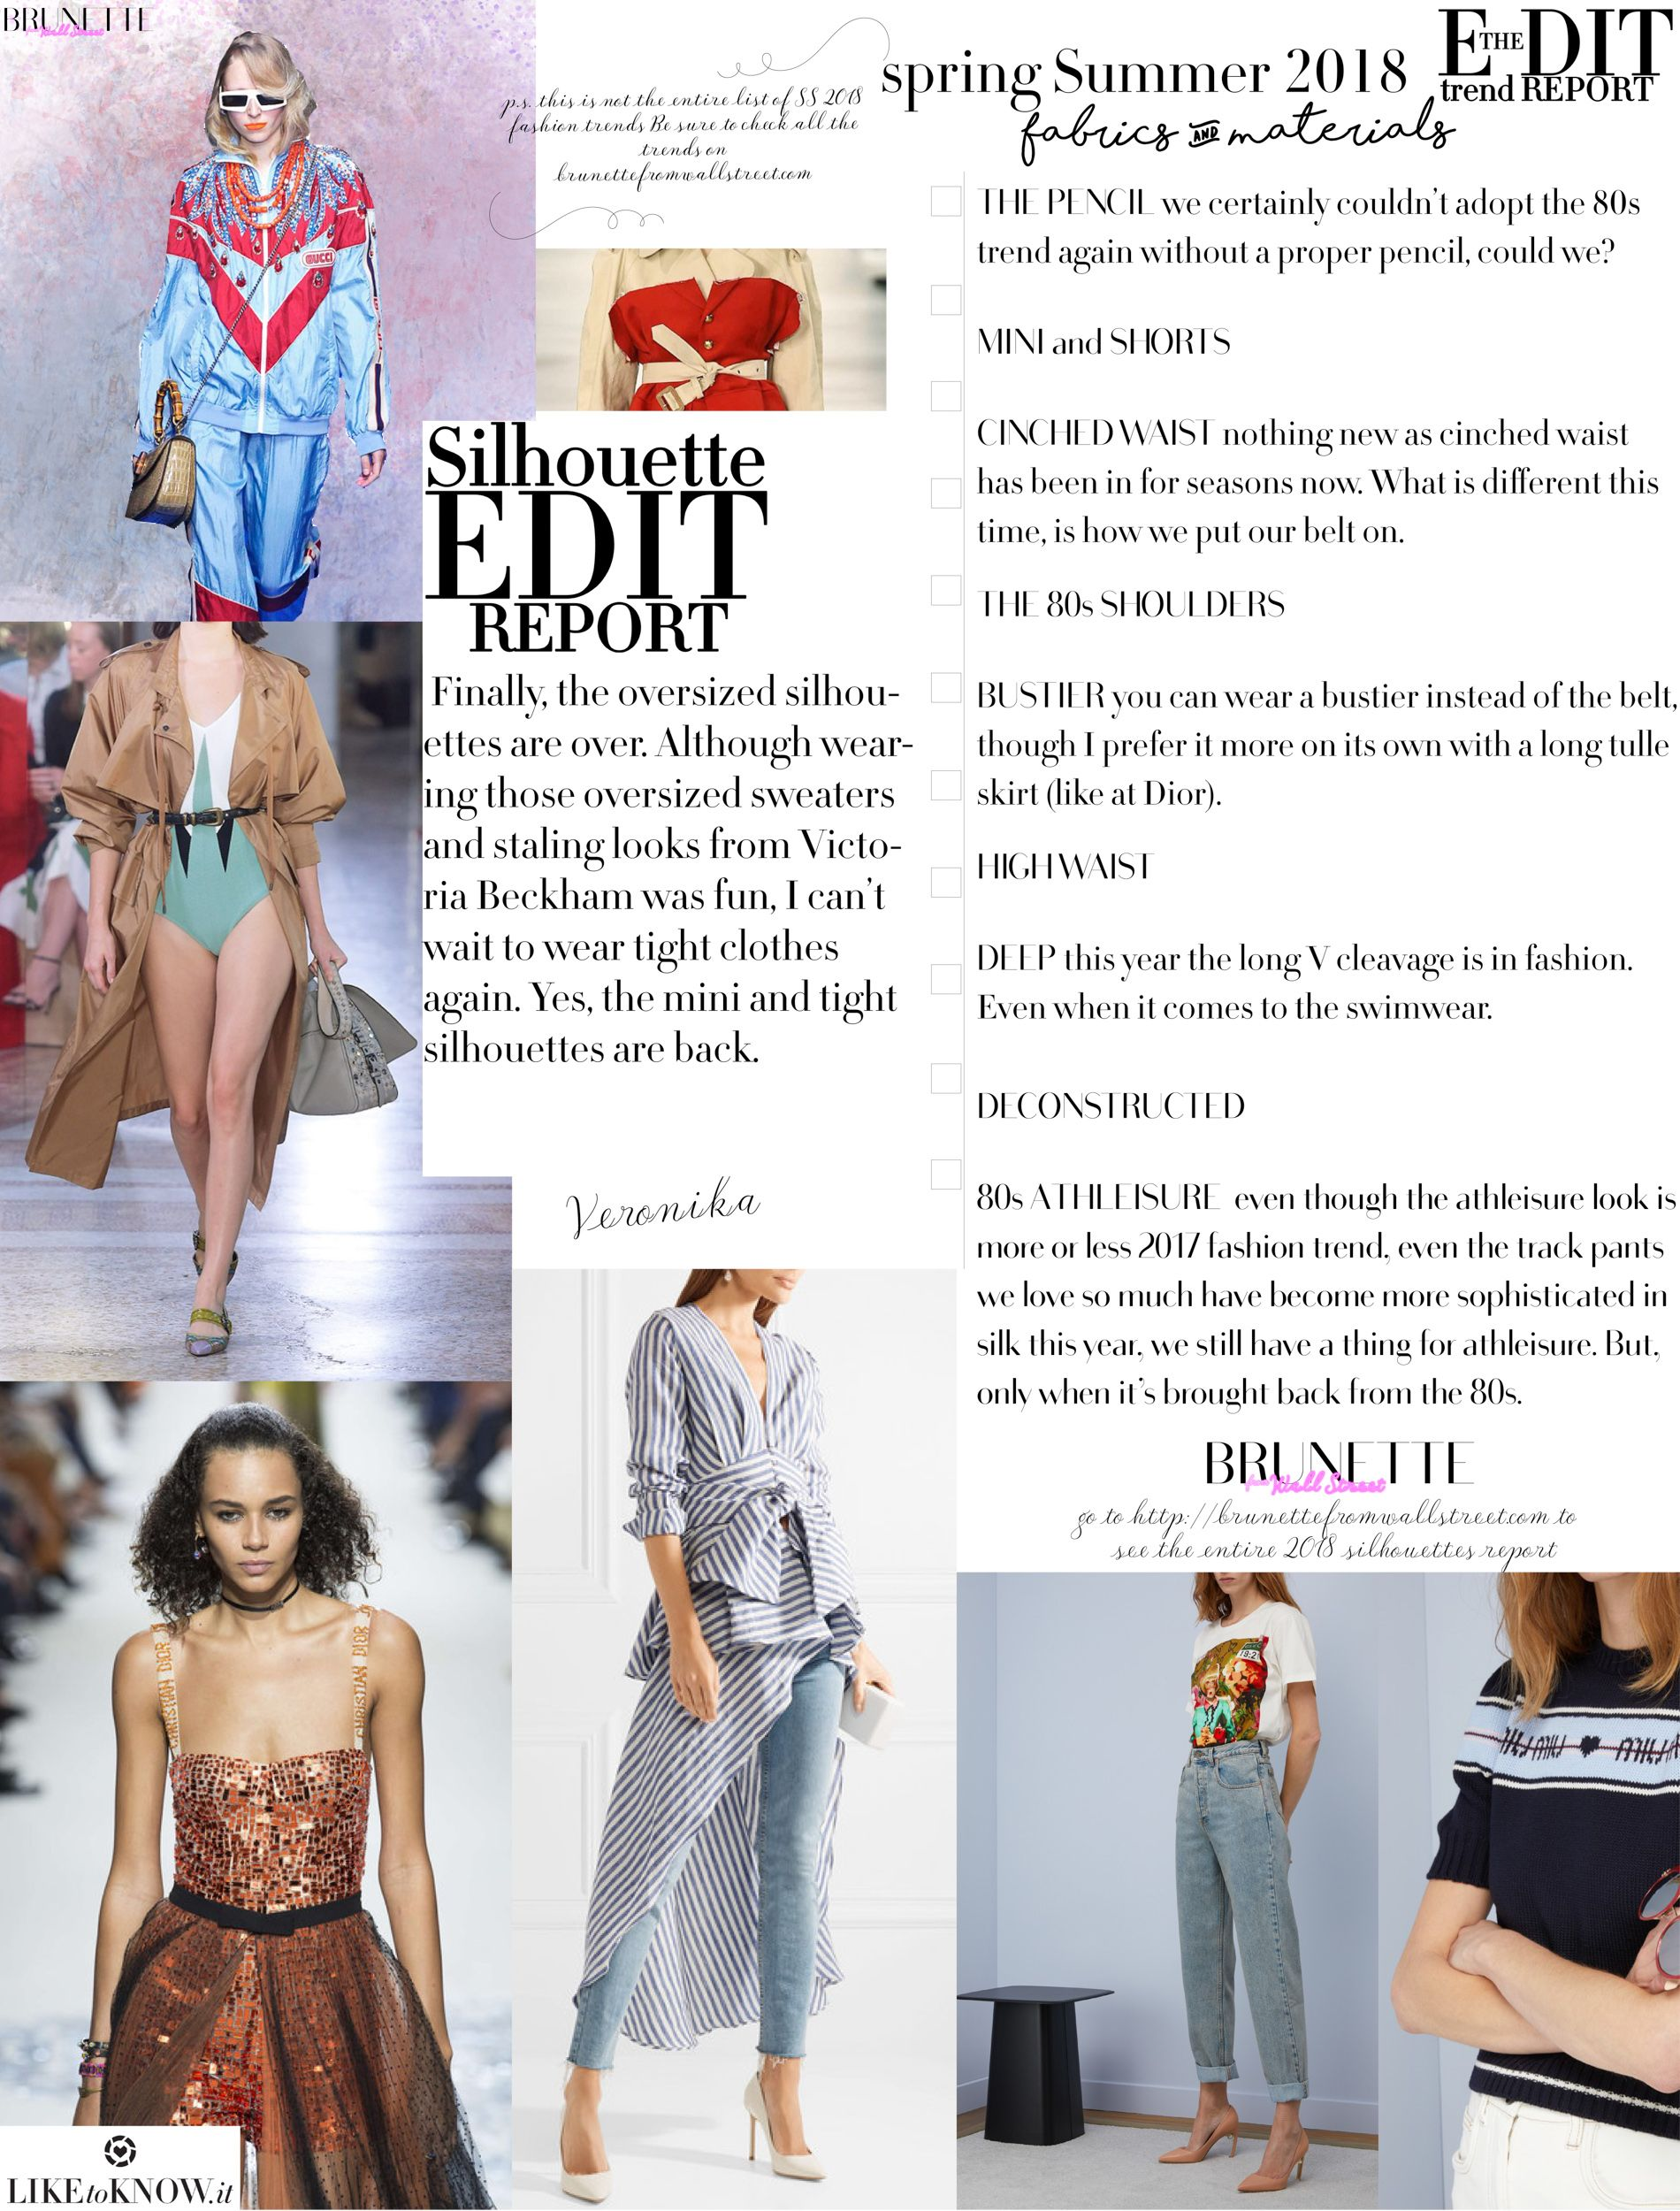 79da43467ad0 Spring Summer 2018 Fashion Trends